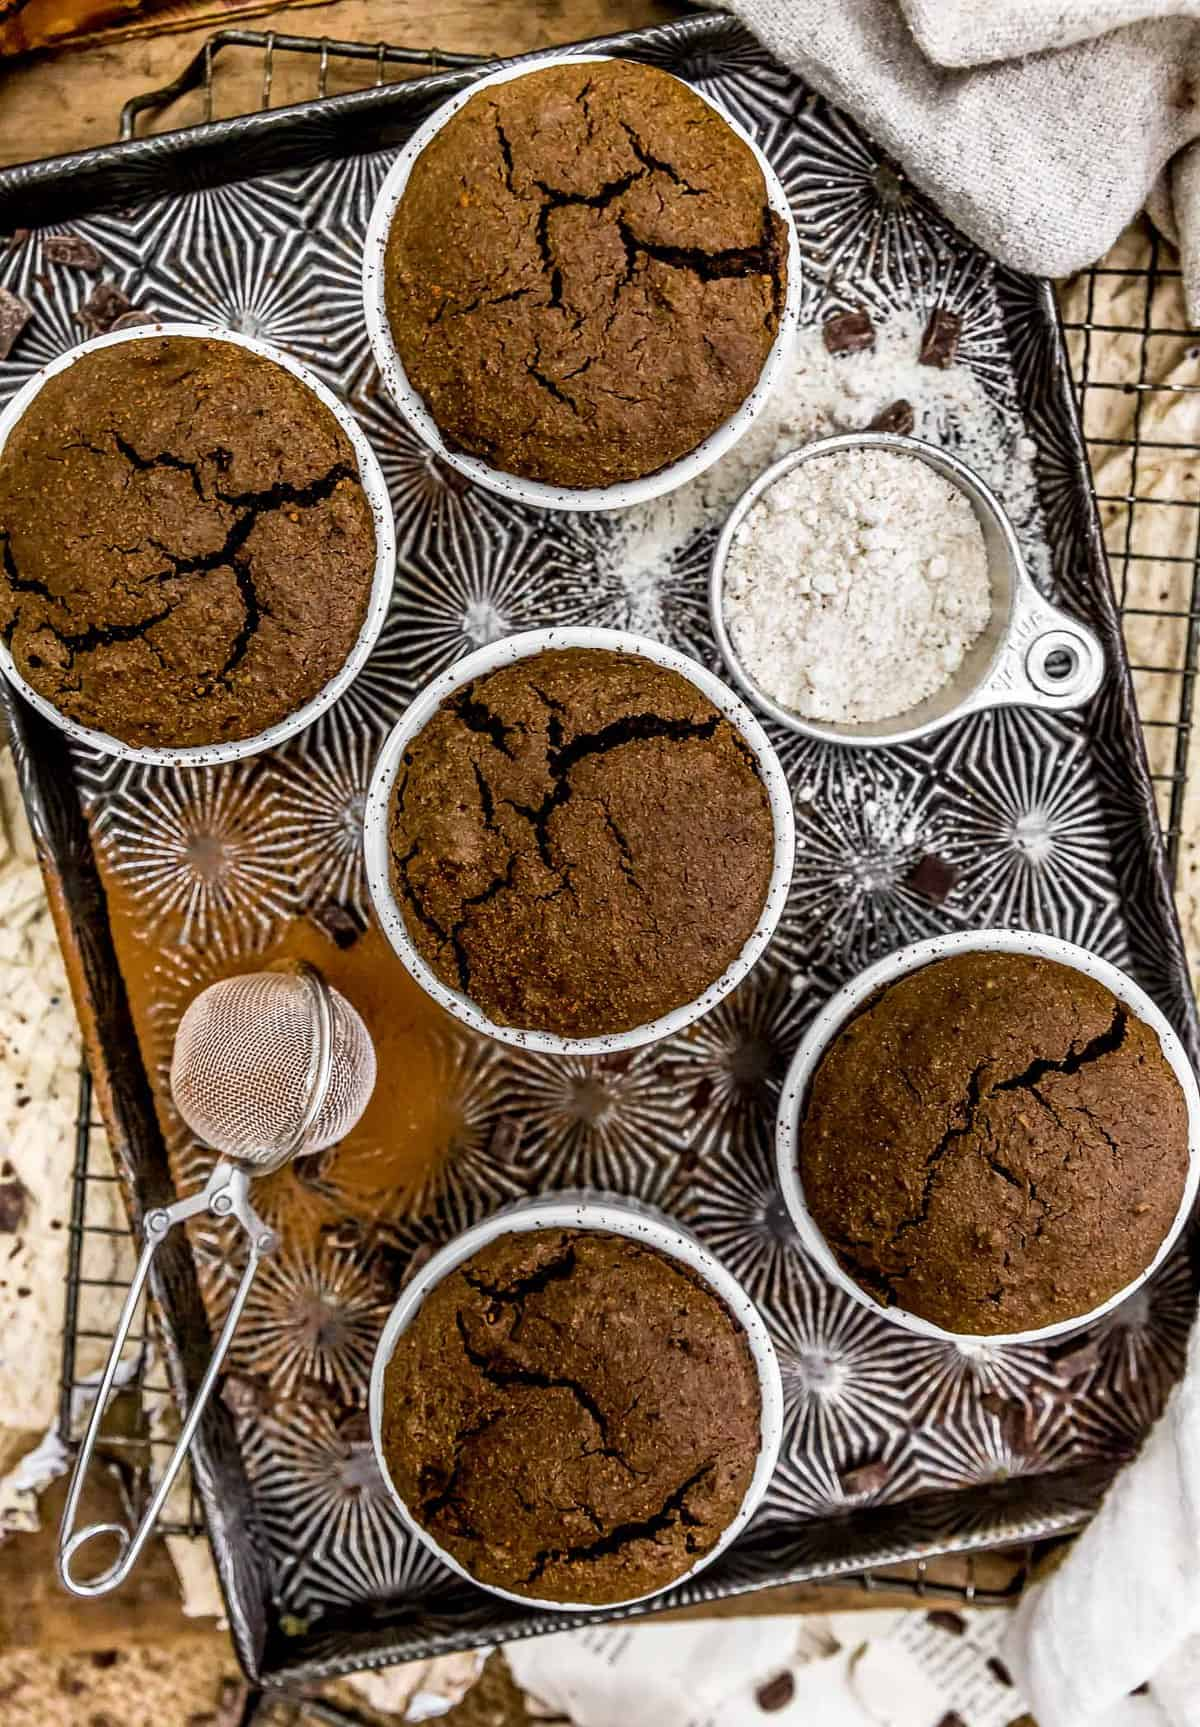 Baking tray with Vegan Chocolate Molten Lava Soufflés